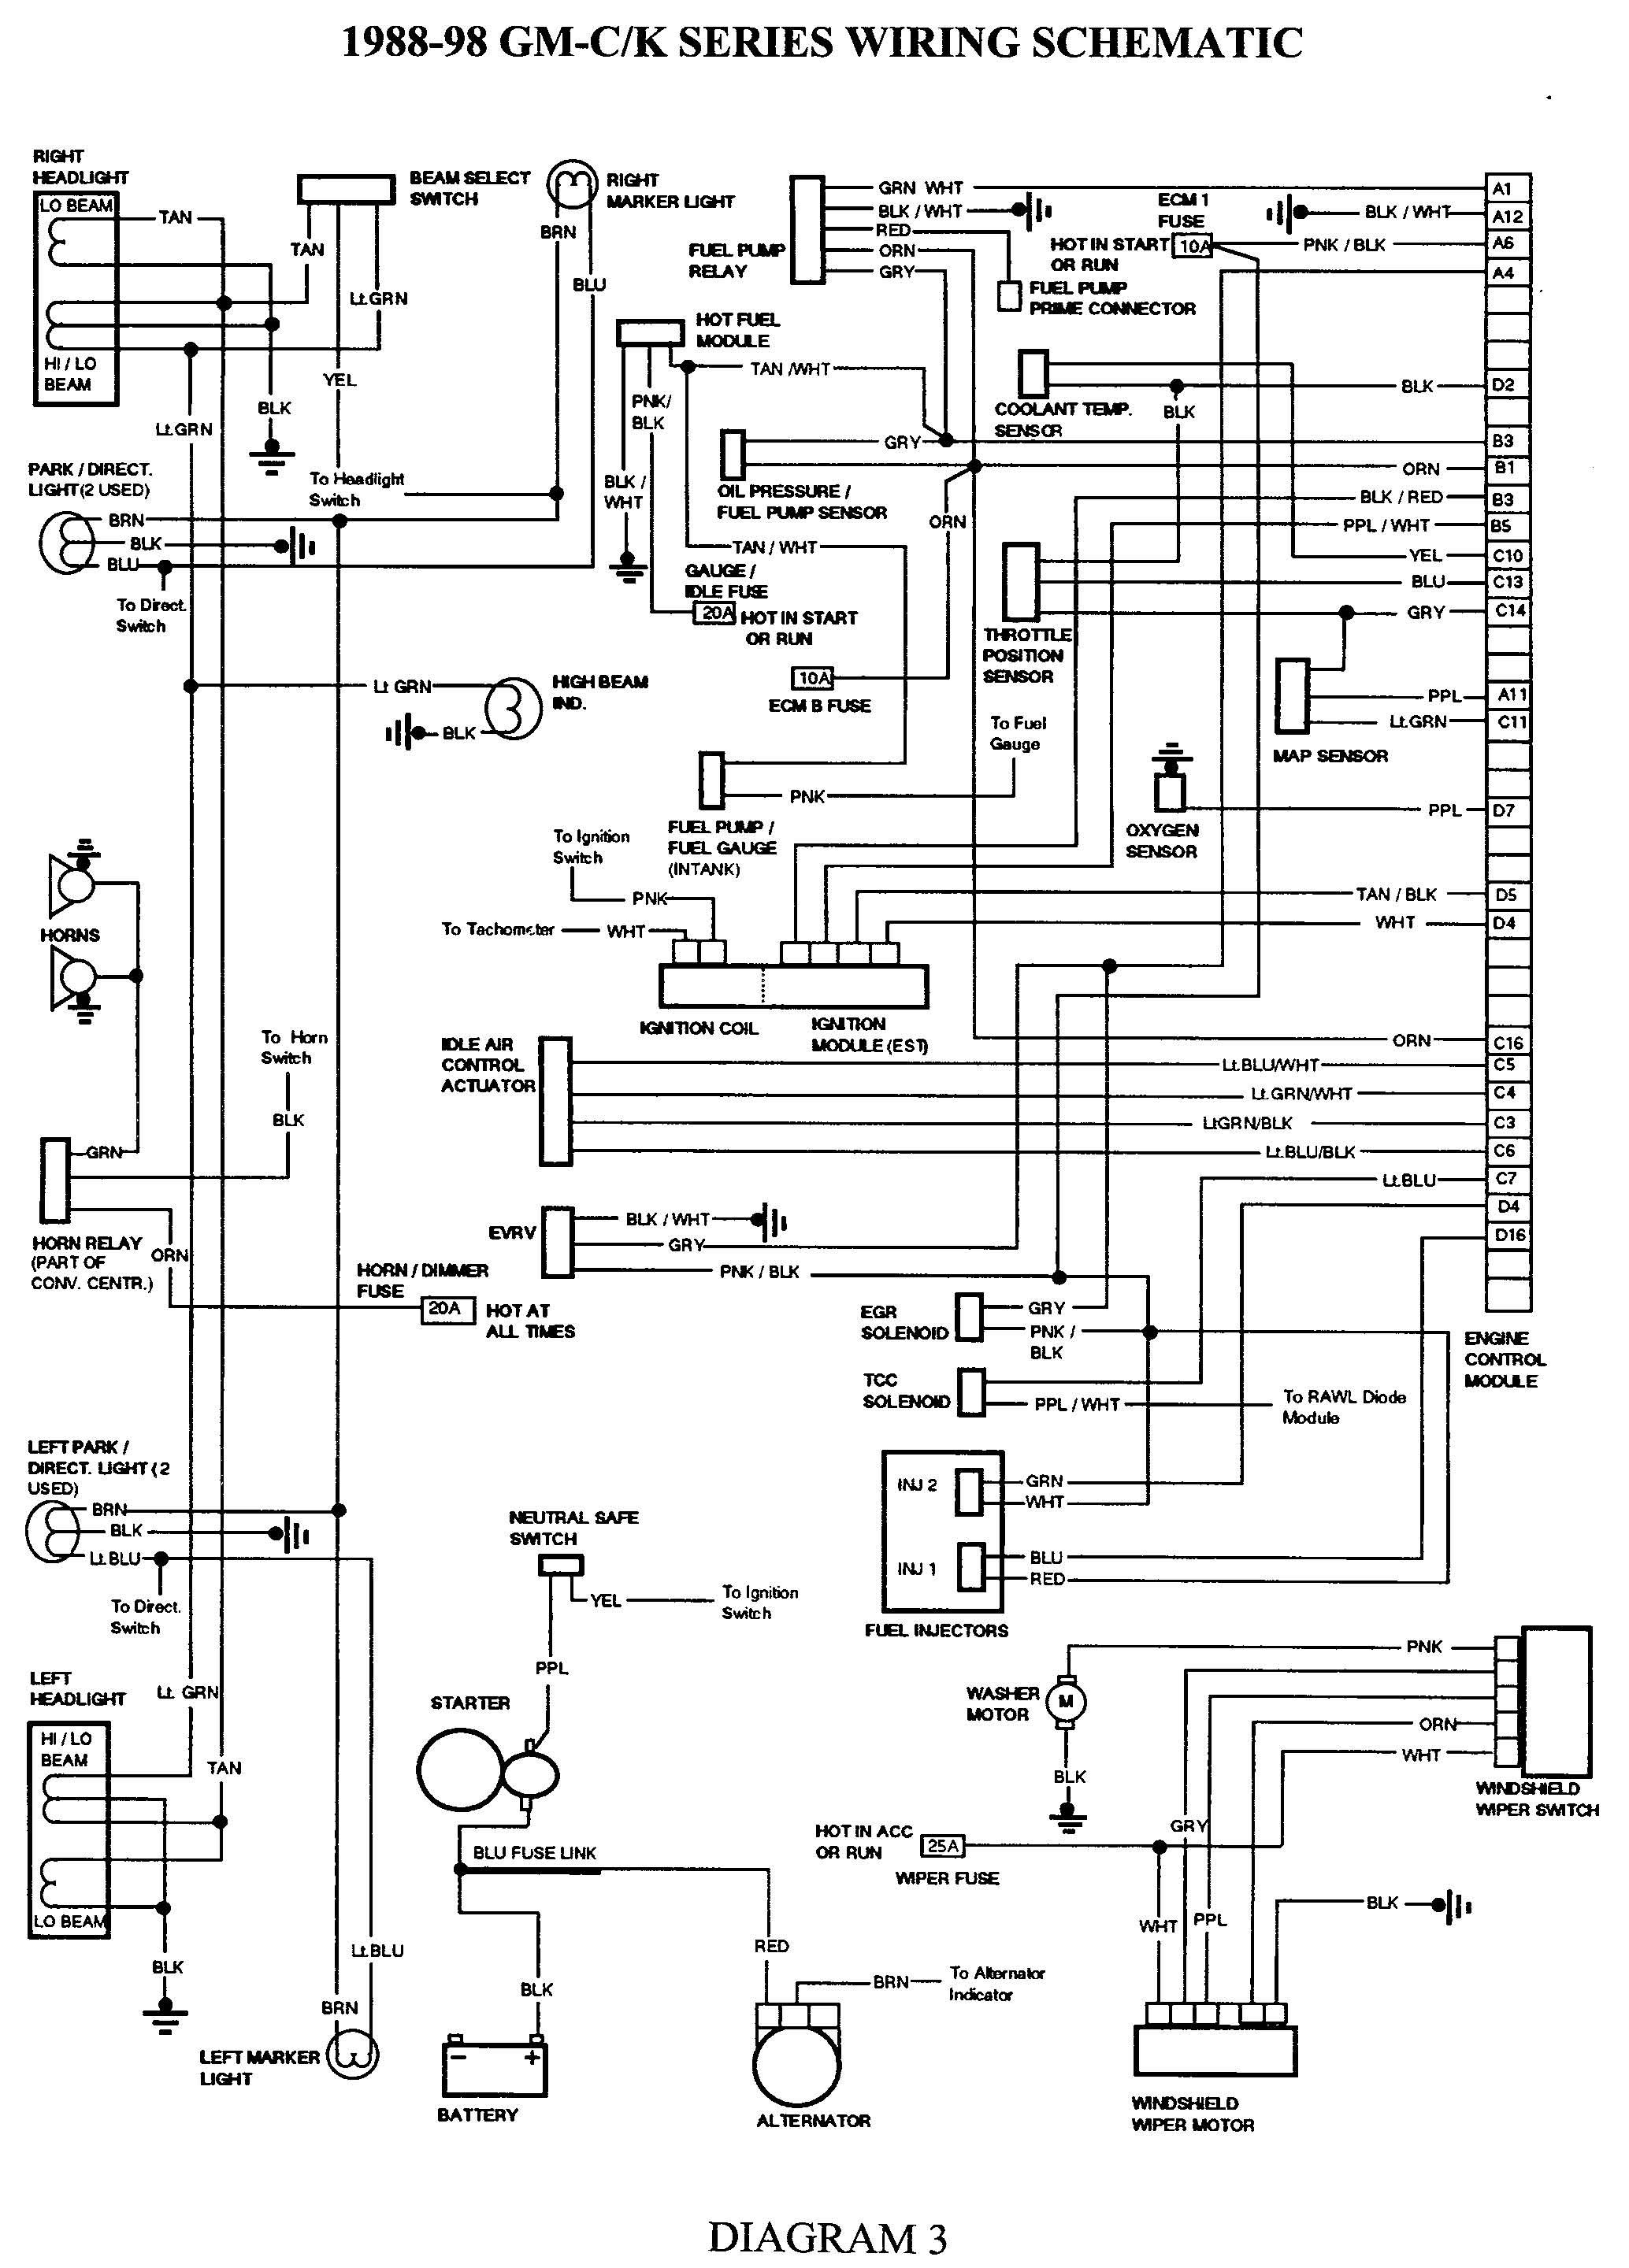 b2f2e5dbdc07dada83ef514f6d4ce3d4 wiring diagram for 1998 chevy silverado google search 98 chevy wiring diagram for 1998 chevy silverado at honlapkeszites.co